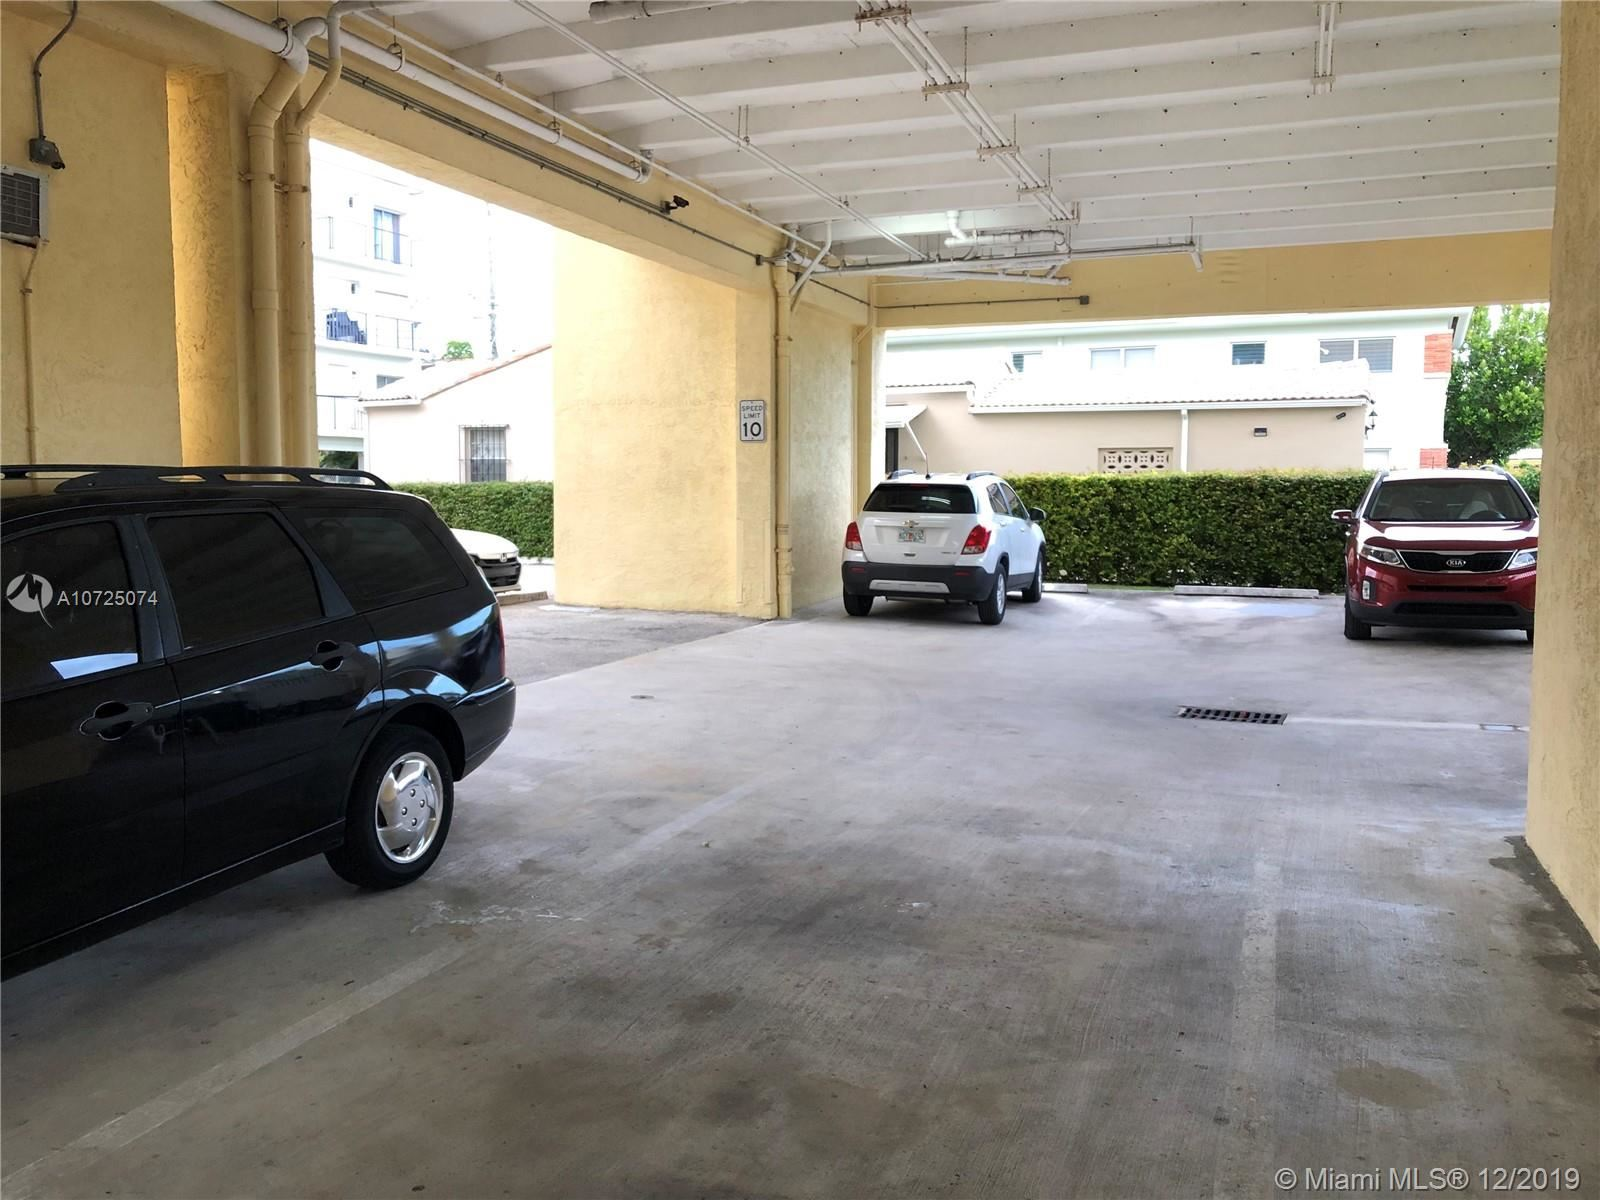 Photo 13 of Listing MLS a10725074 in 1975 Normandy Dr #504 Miami Beach FL 33141